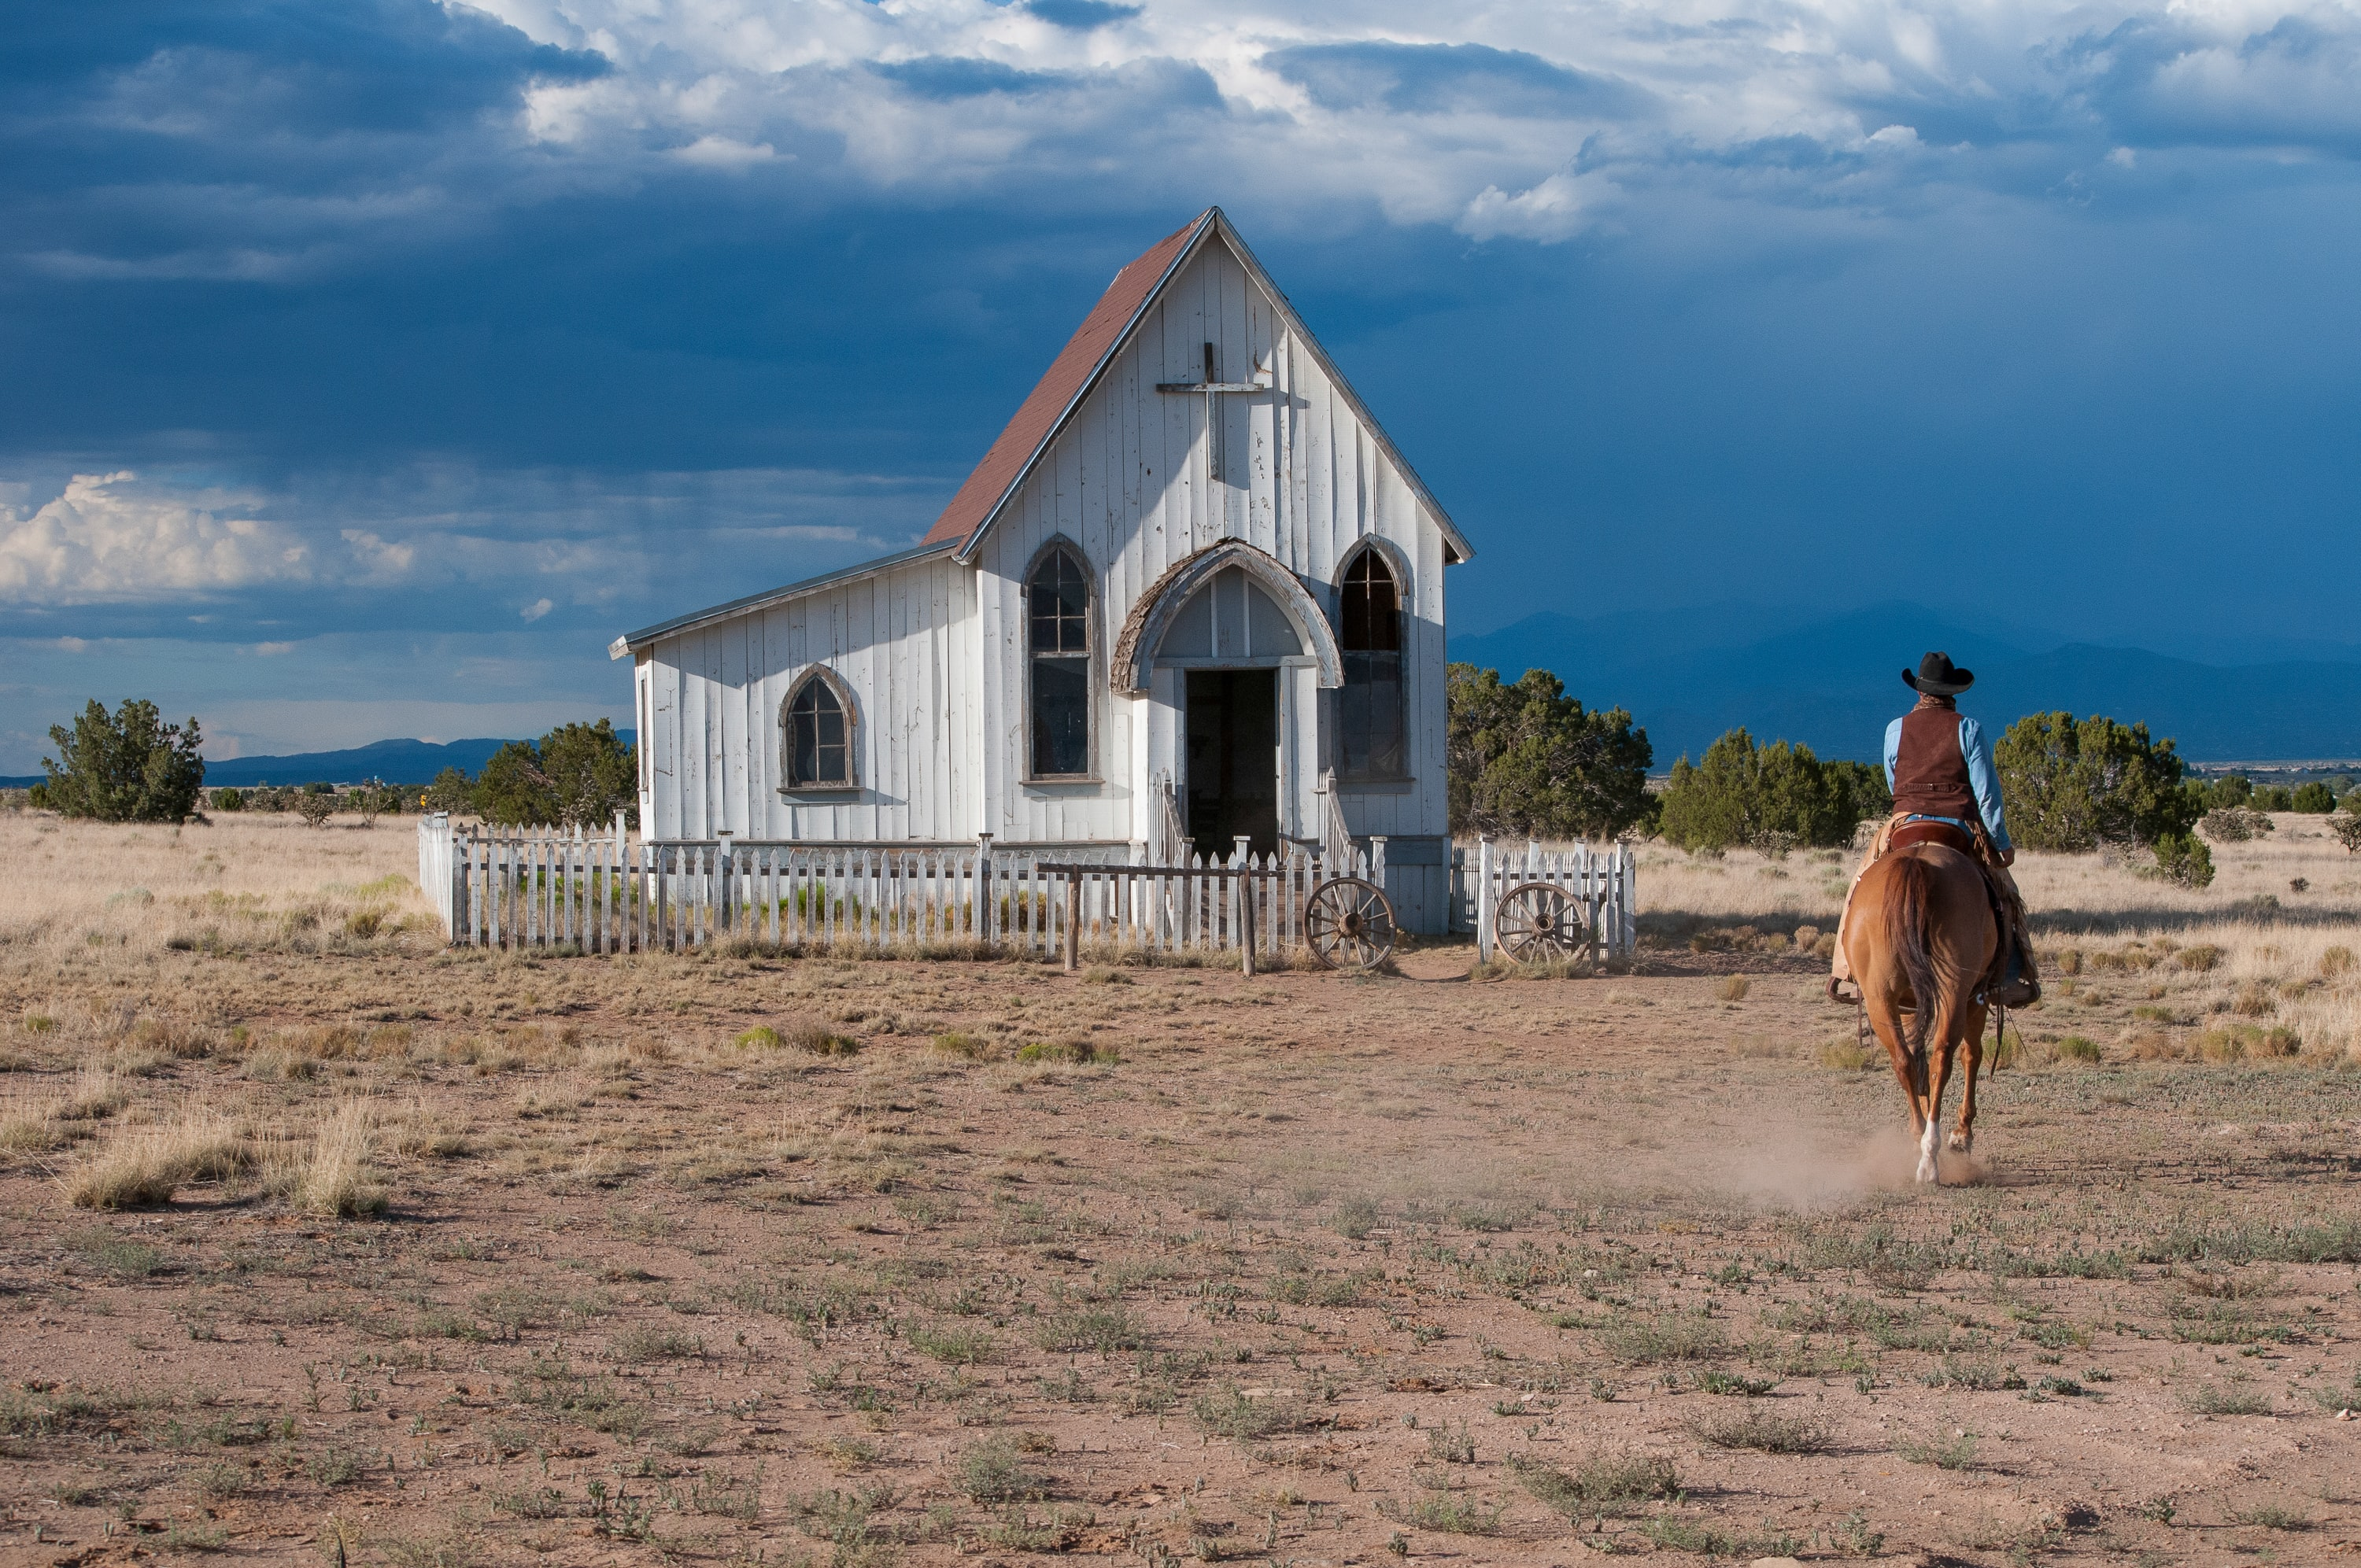 A man in a cowboy hat riding a horse near a wooden chapel in the middle of arid plains